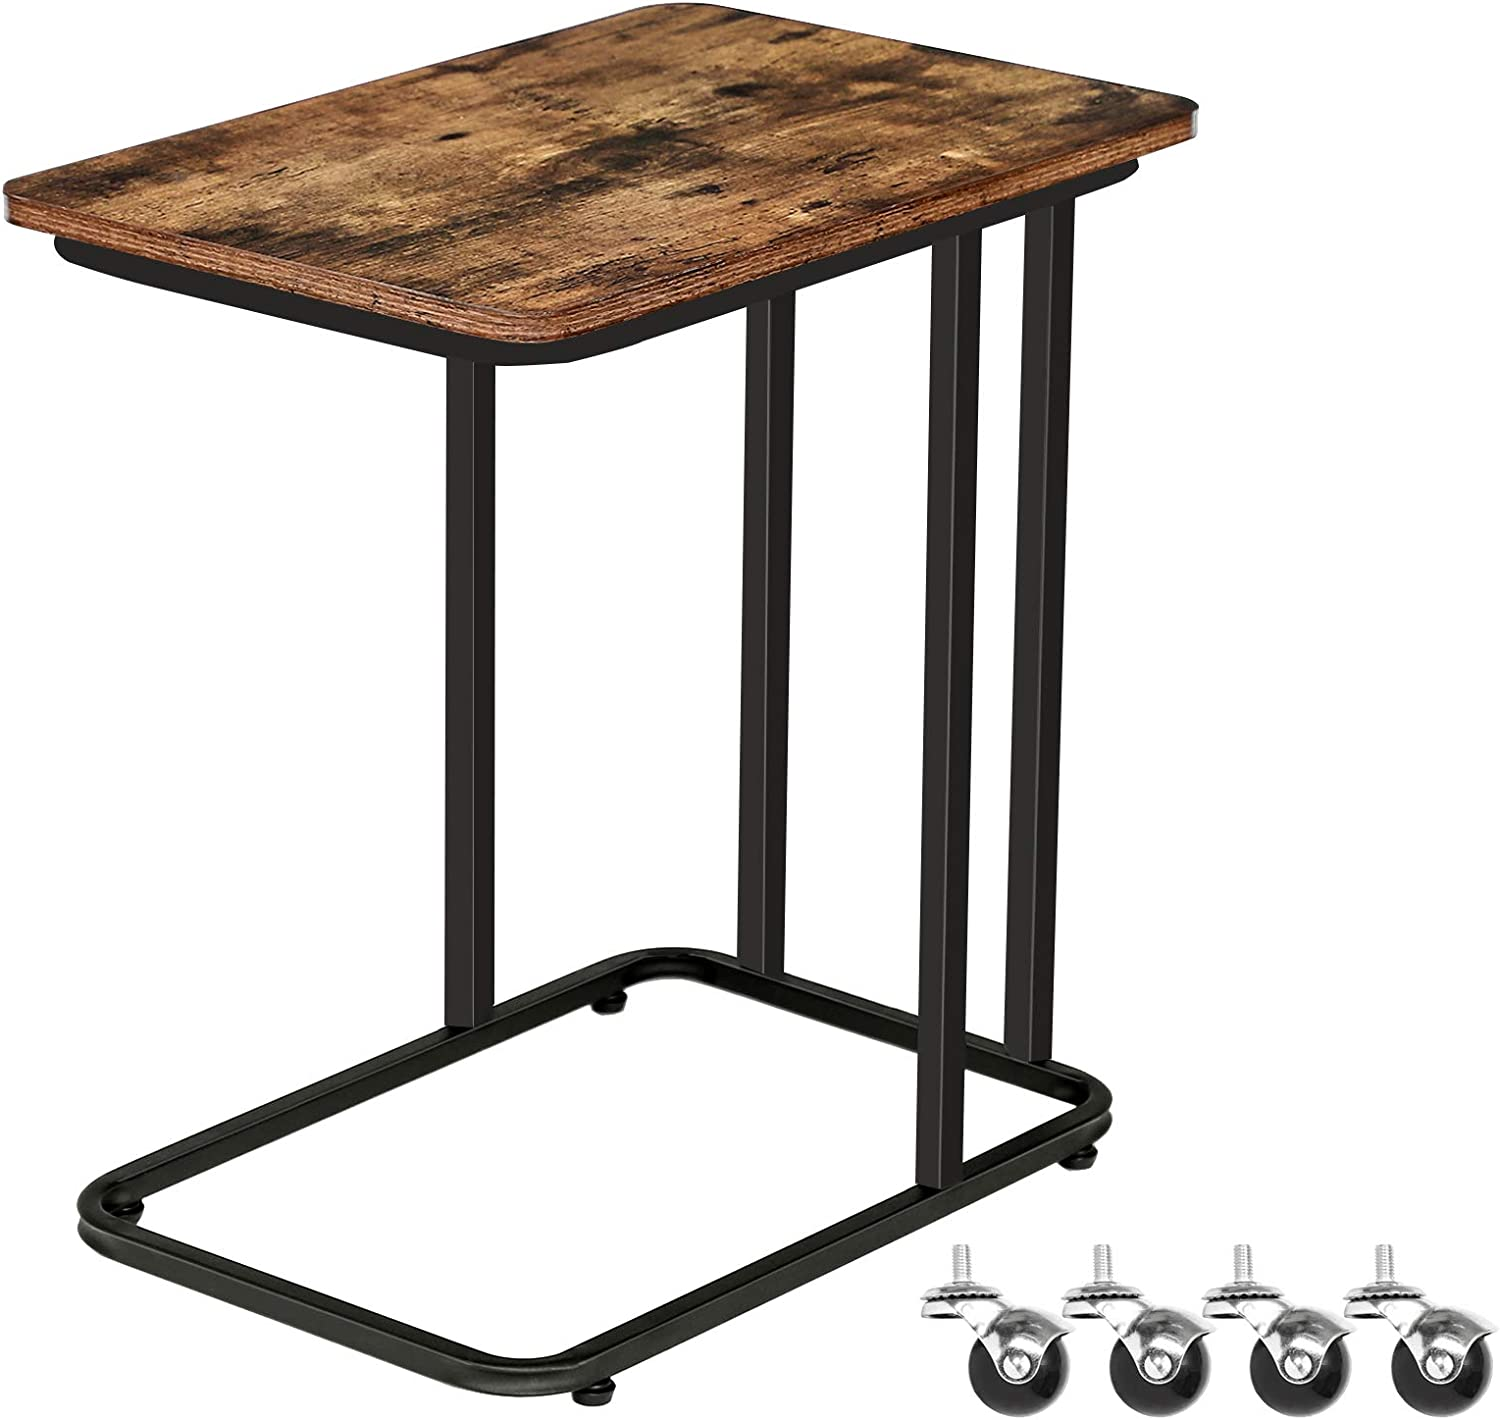 HOOBRO Side Table, Mobile Snack Table, Slides Next to Sofa Couch, Industrial Laptop Table for Small Space, Living Room, Bedroom, Easy Assembly, Industrial Wood Look Accent Table, Rustic Brown BF01SF01